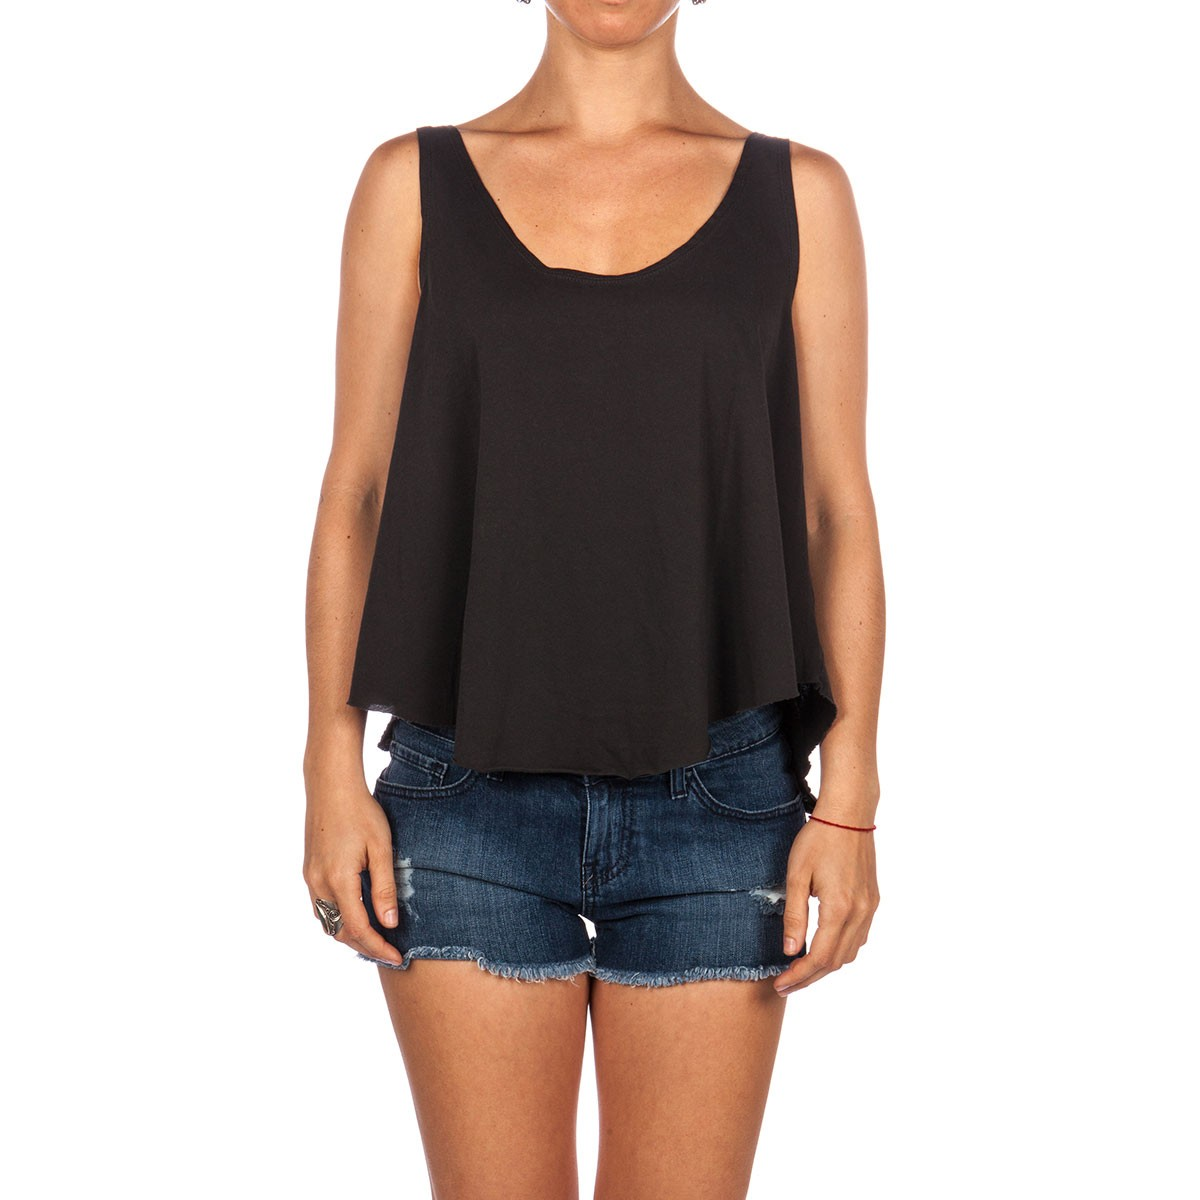 RVCA Label Drape Tank Top - Black Haze